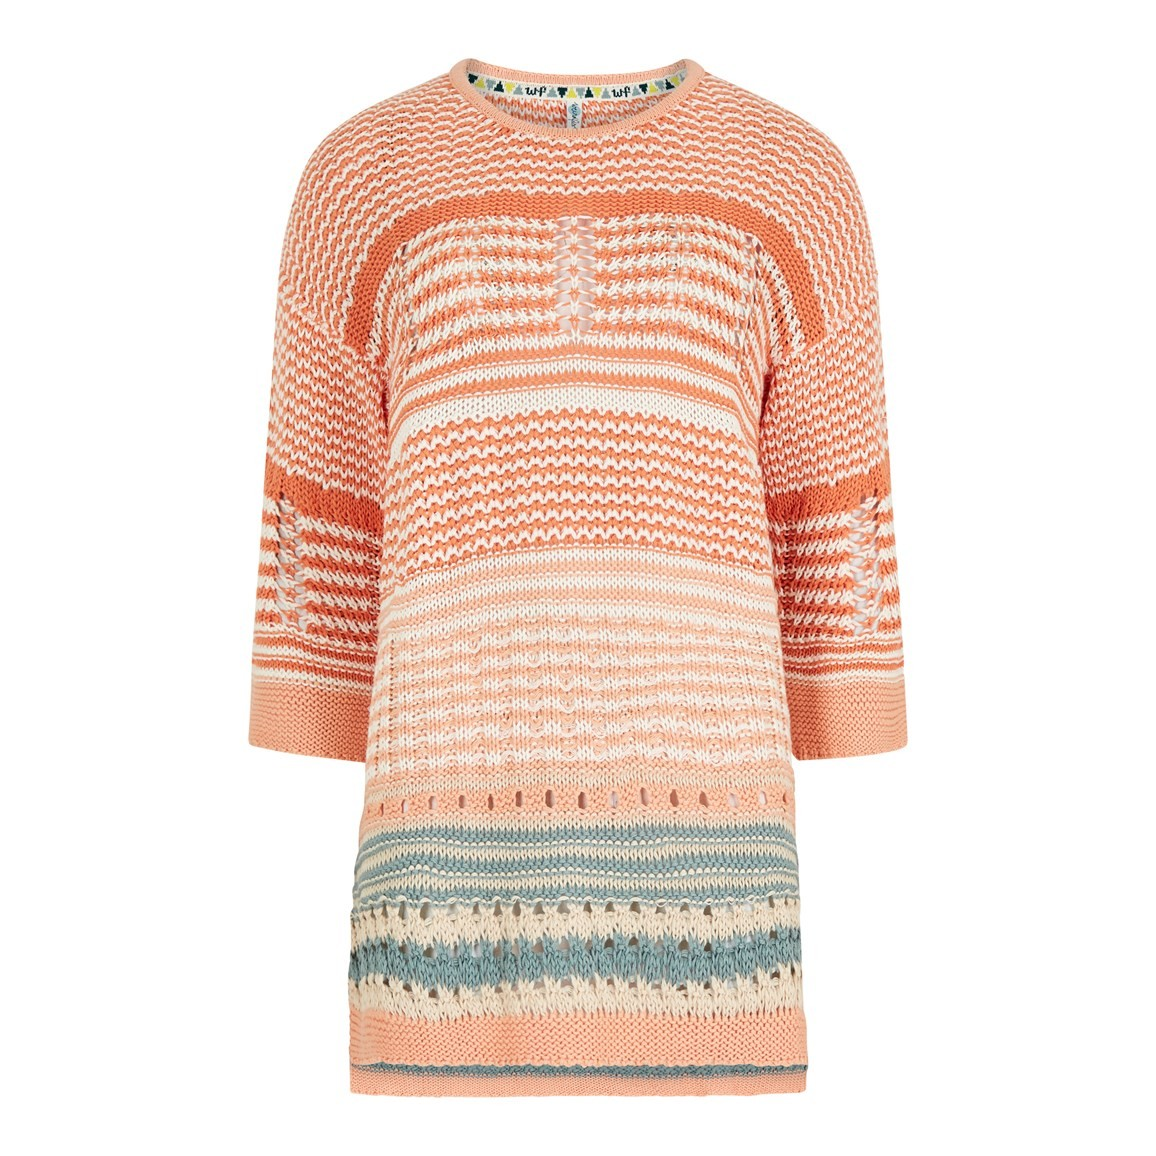 5caa6c4cc58 Shop Striped Clothing for Women - Obsessory